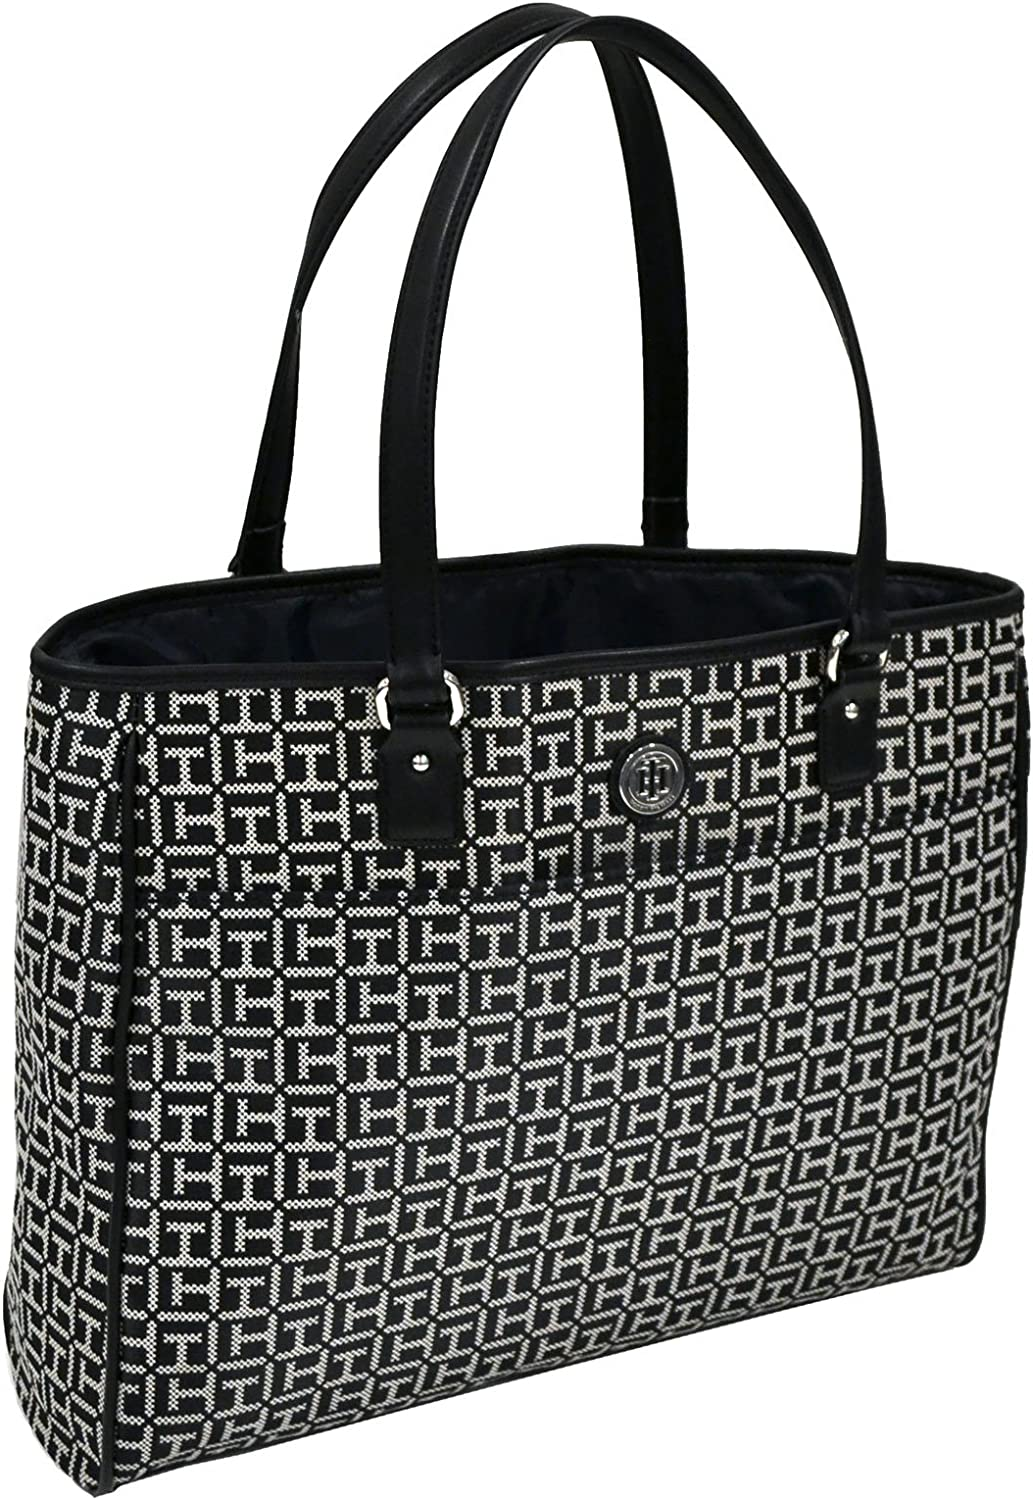 Tommy Hilfiger Large Tote Purse (Black/White)